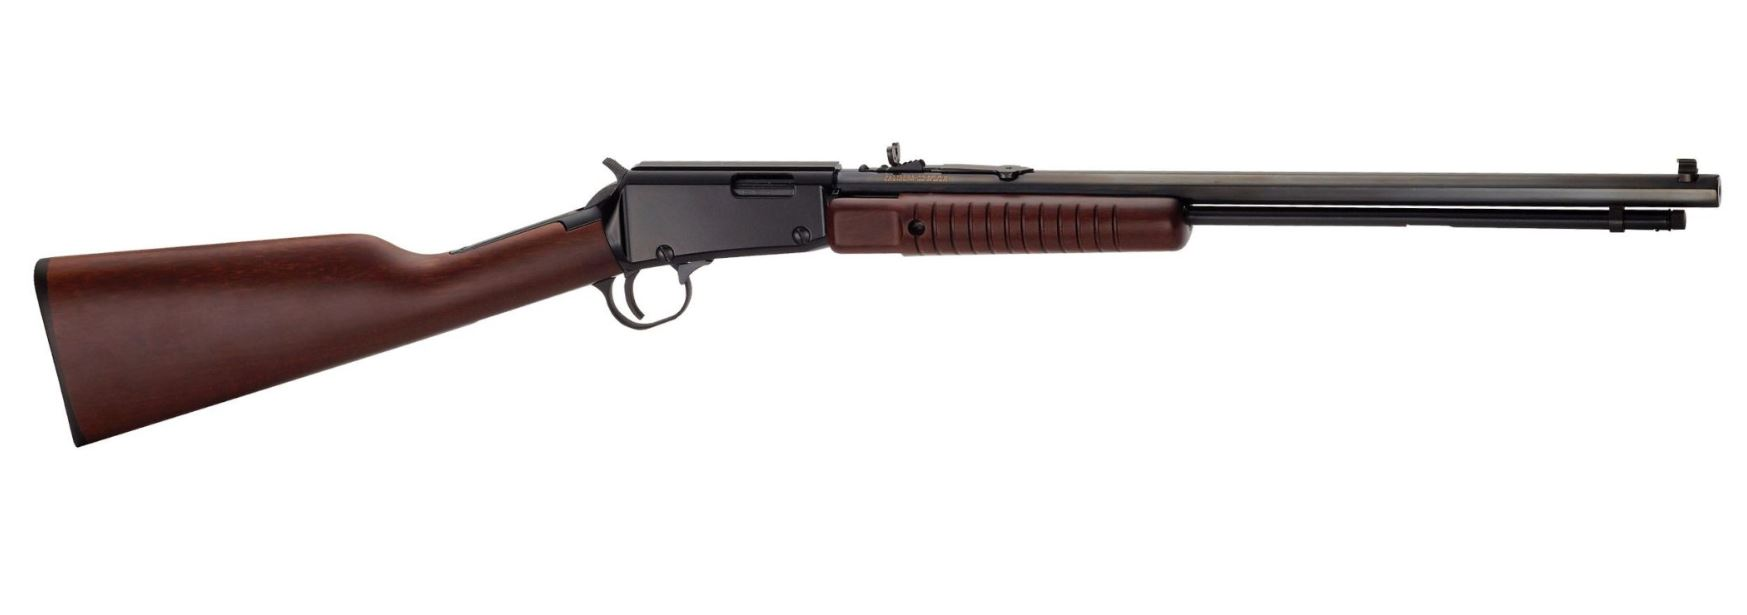 Henry Repeating Arms PUMP RIFLE 22 MAGNUM